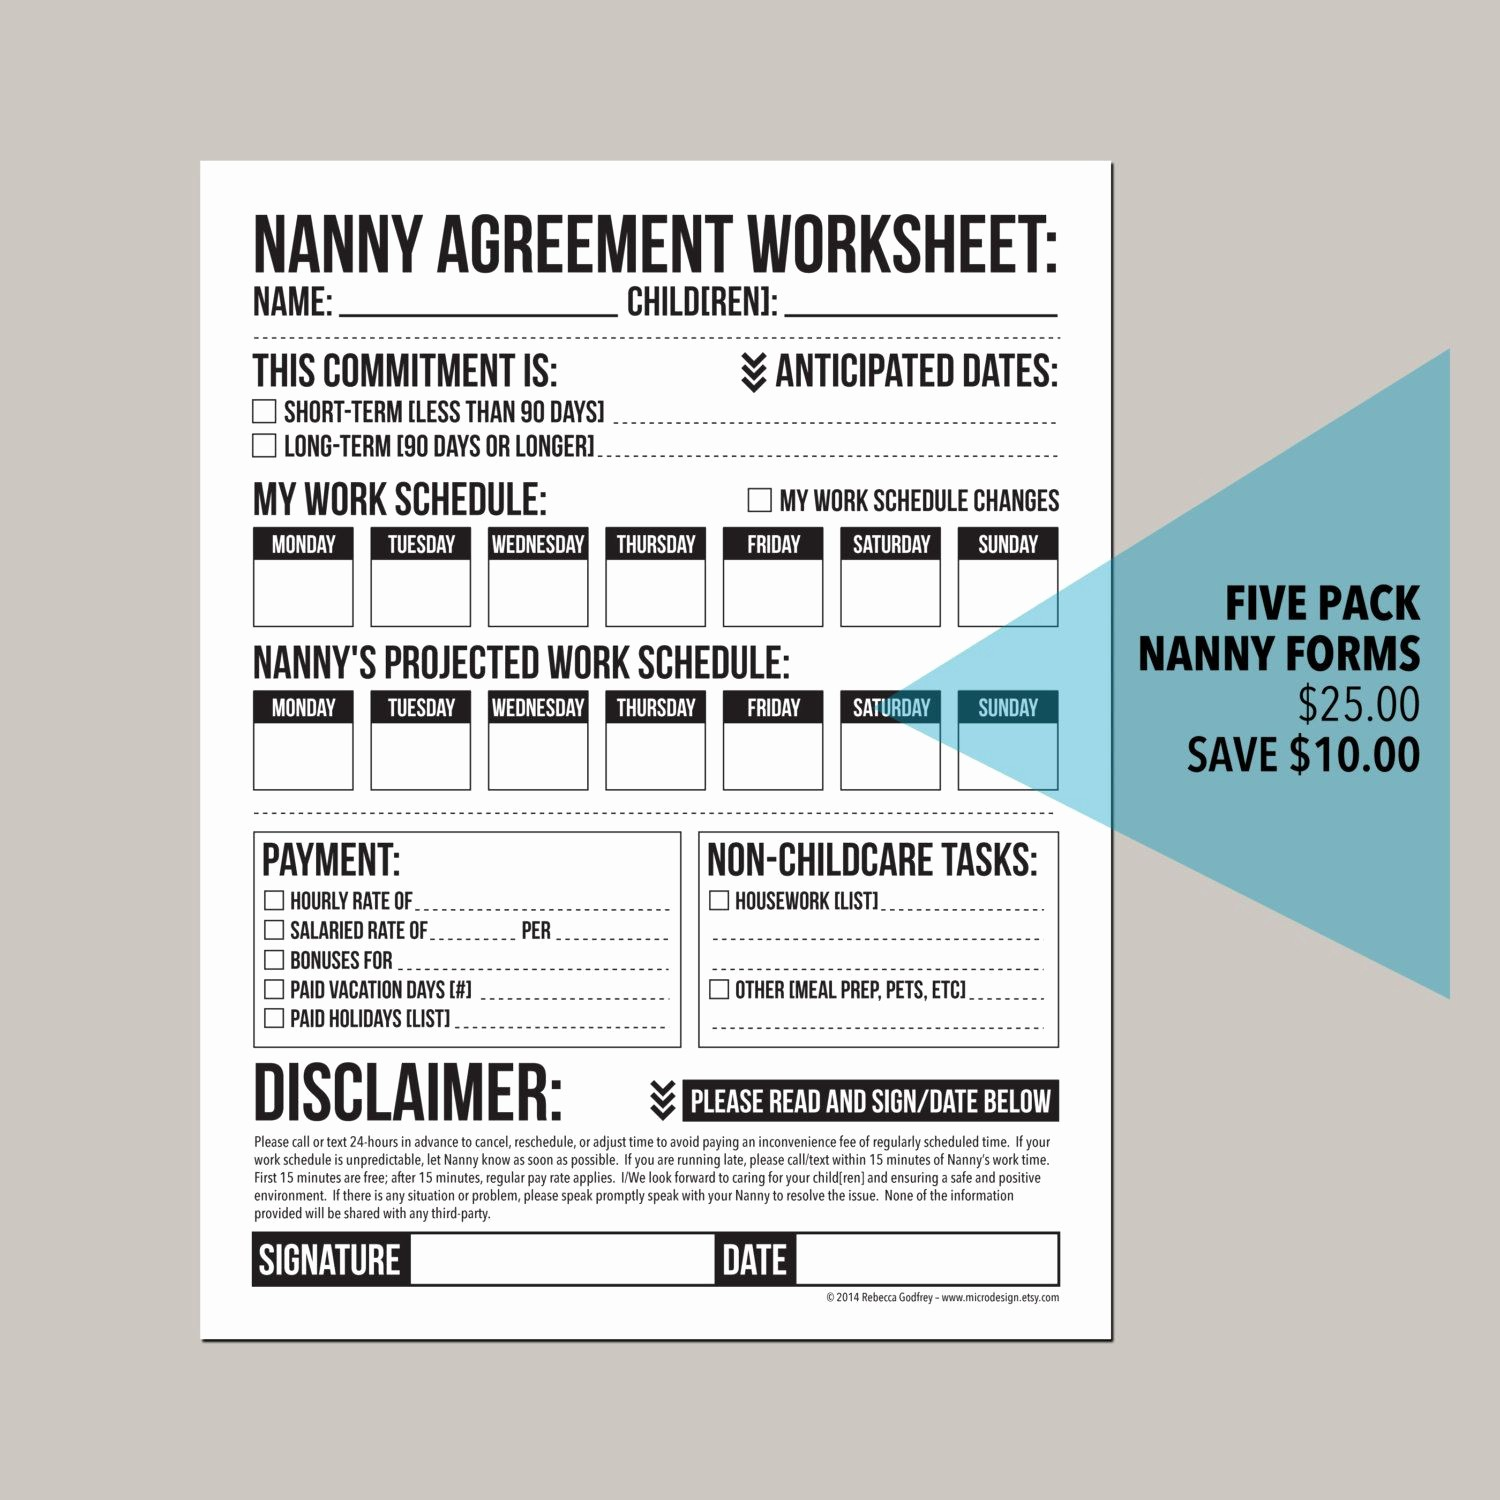 Emergency Contact List for Nanny Lovely Save $10 by Purchasing Five Of My Most Popular Nanny forms